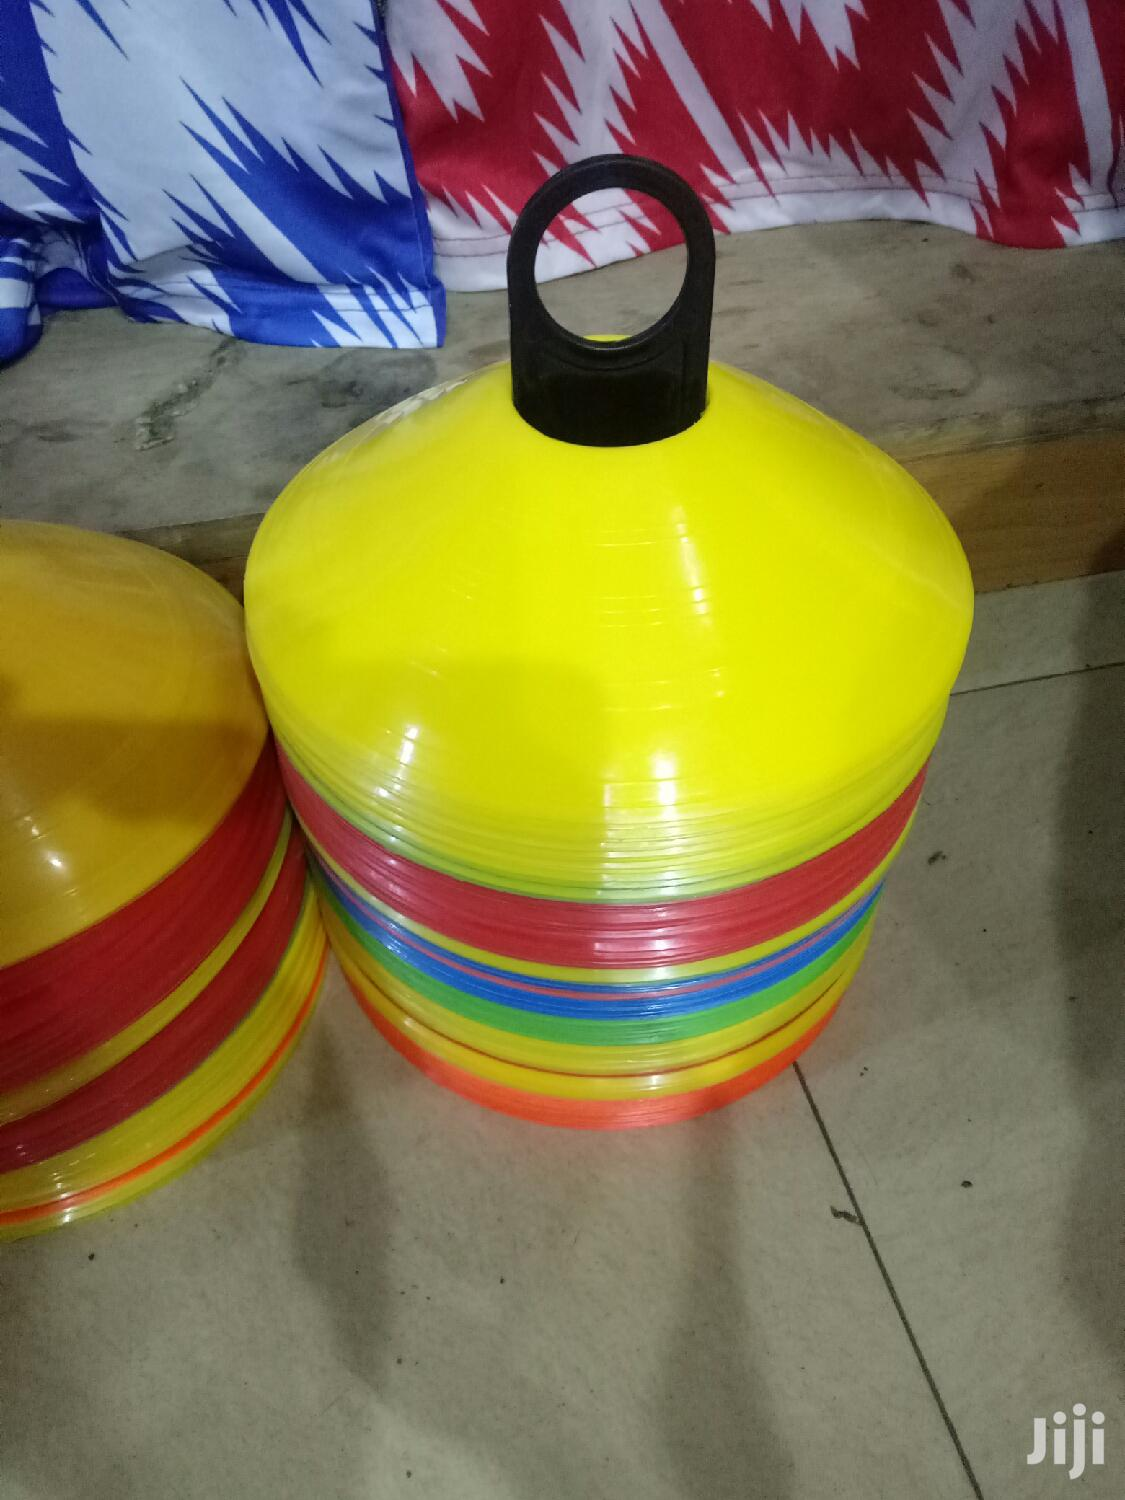 Football Cones | Sports Equipment for sale in Nairobi Central, Nairobi, Kenya